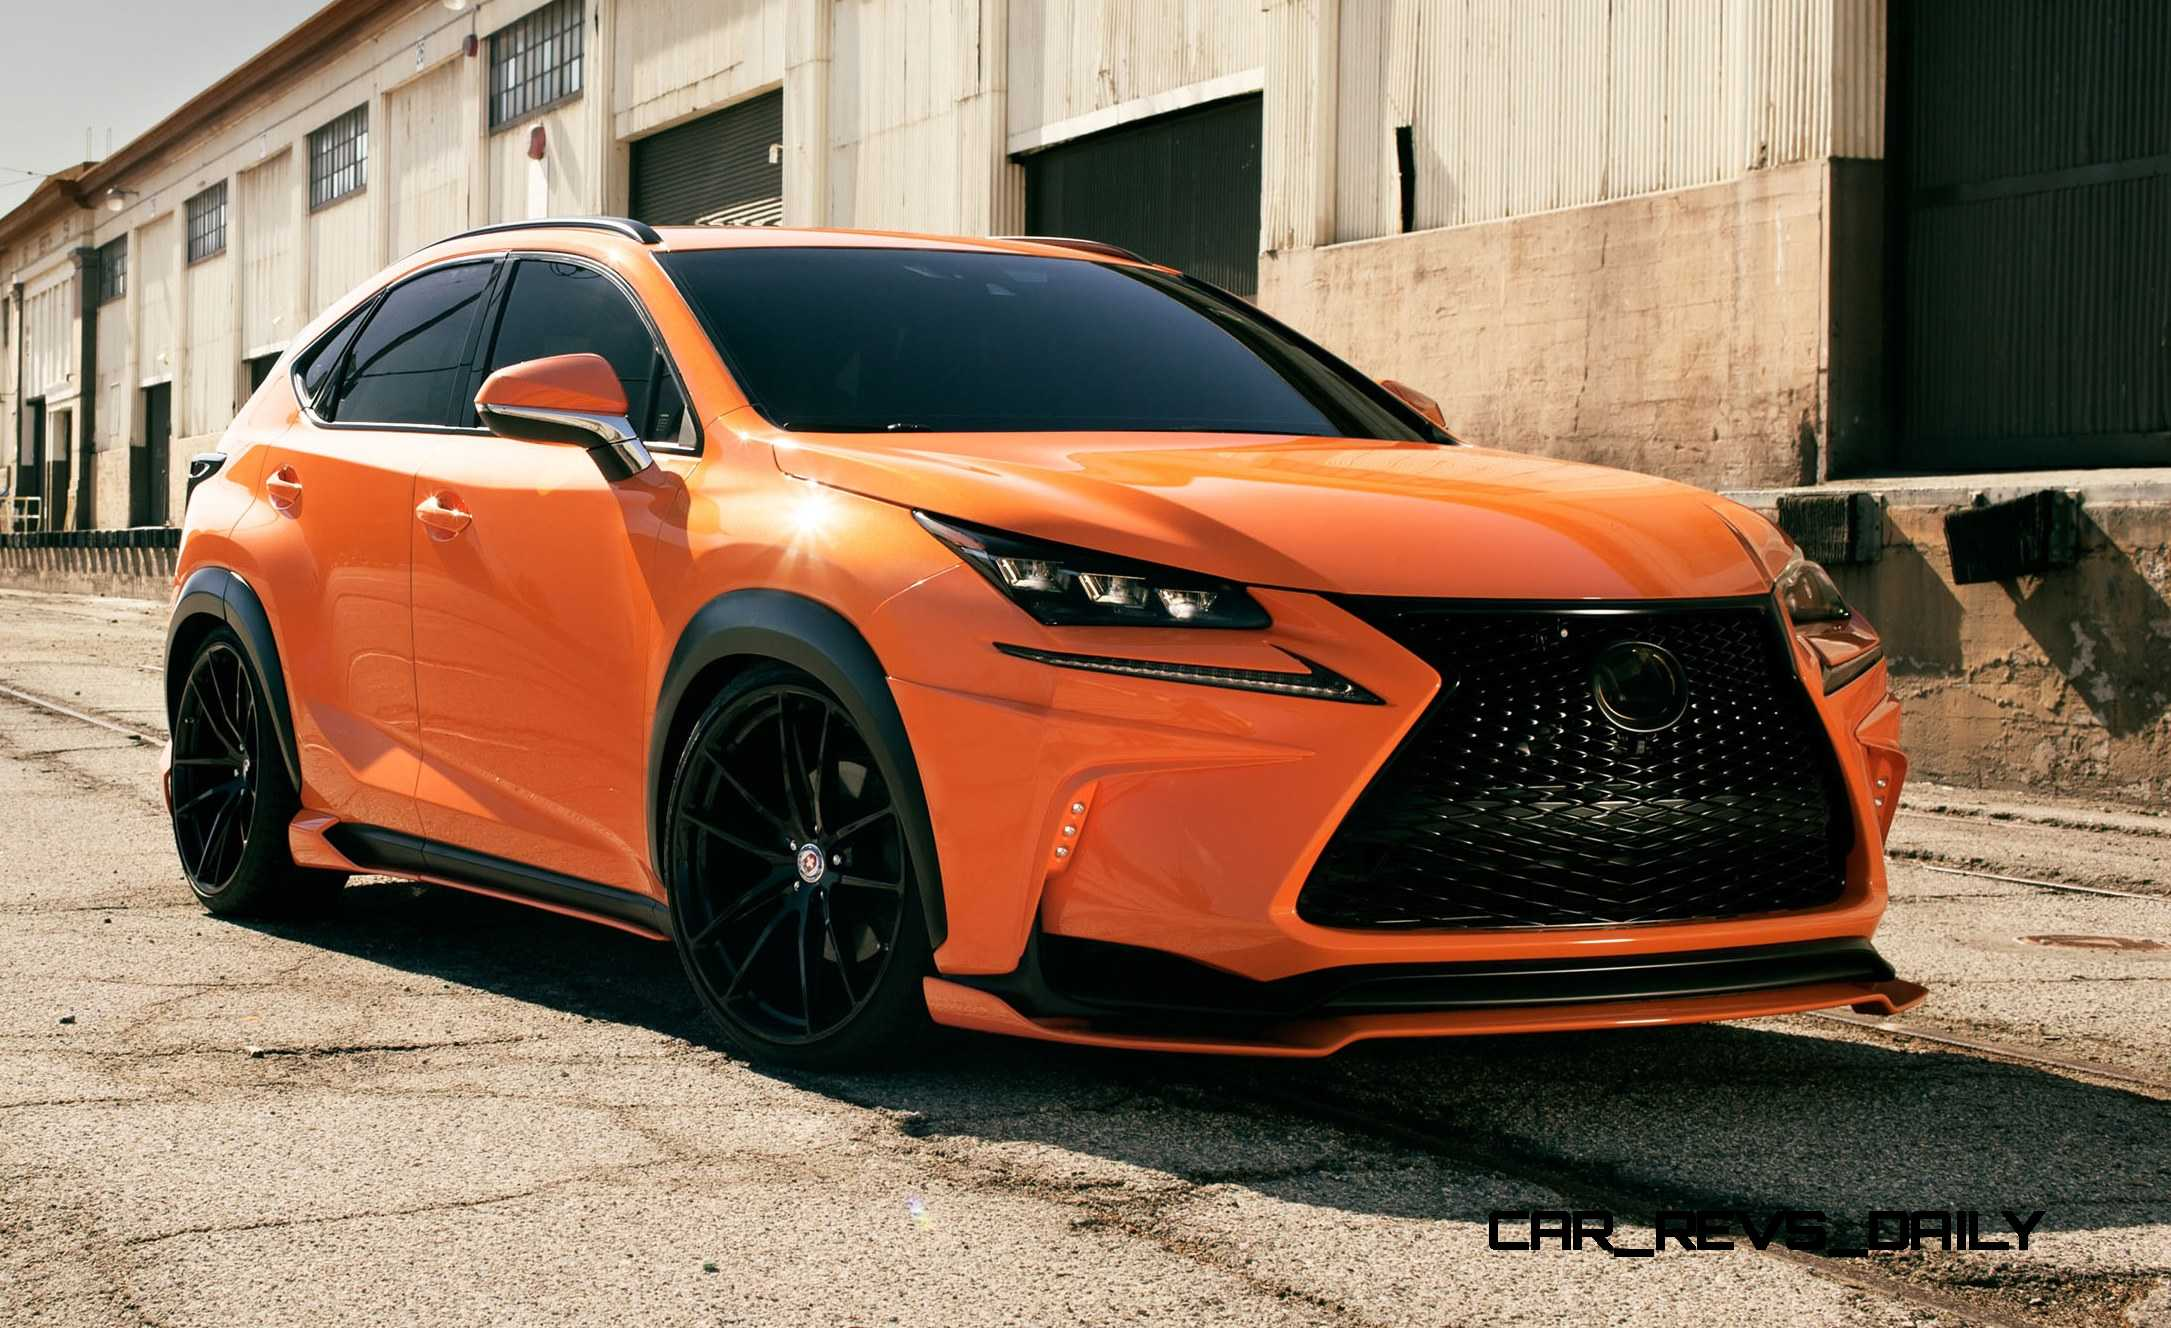 2015 lexus nx200t f sport and rc350 chrome wrap by 360. Black Bedroom Furniture Sets. Home Design Ideas